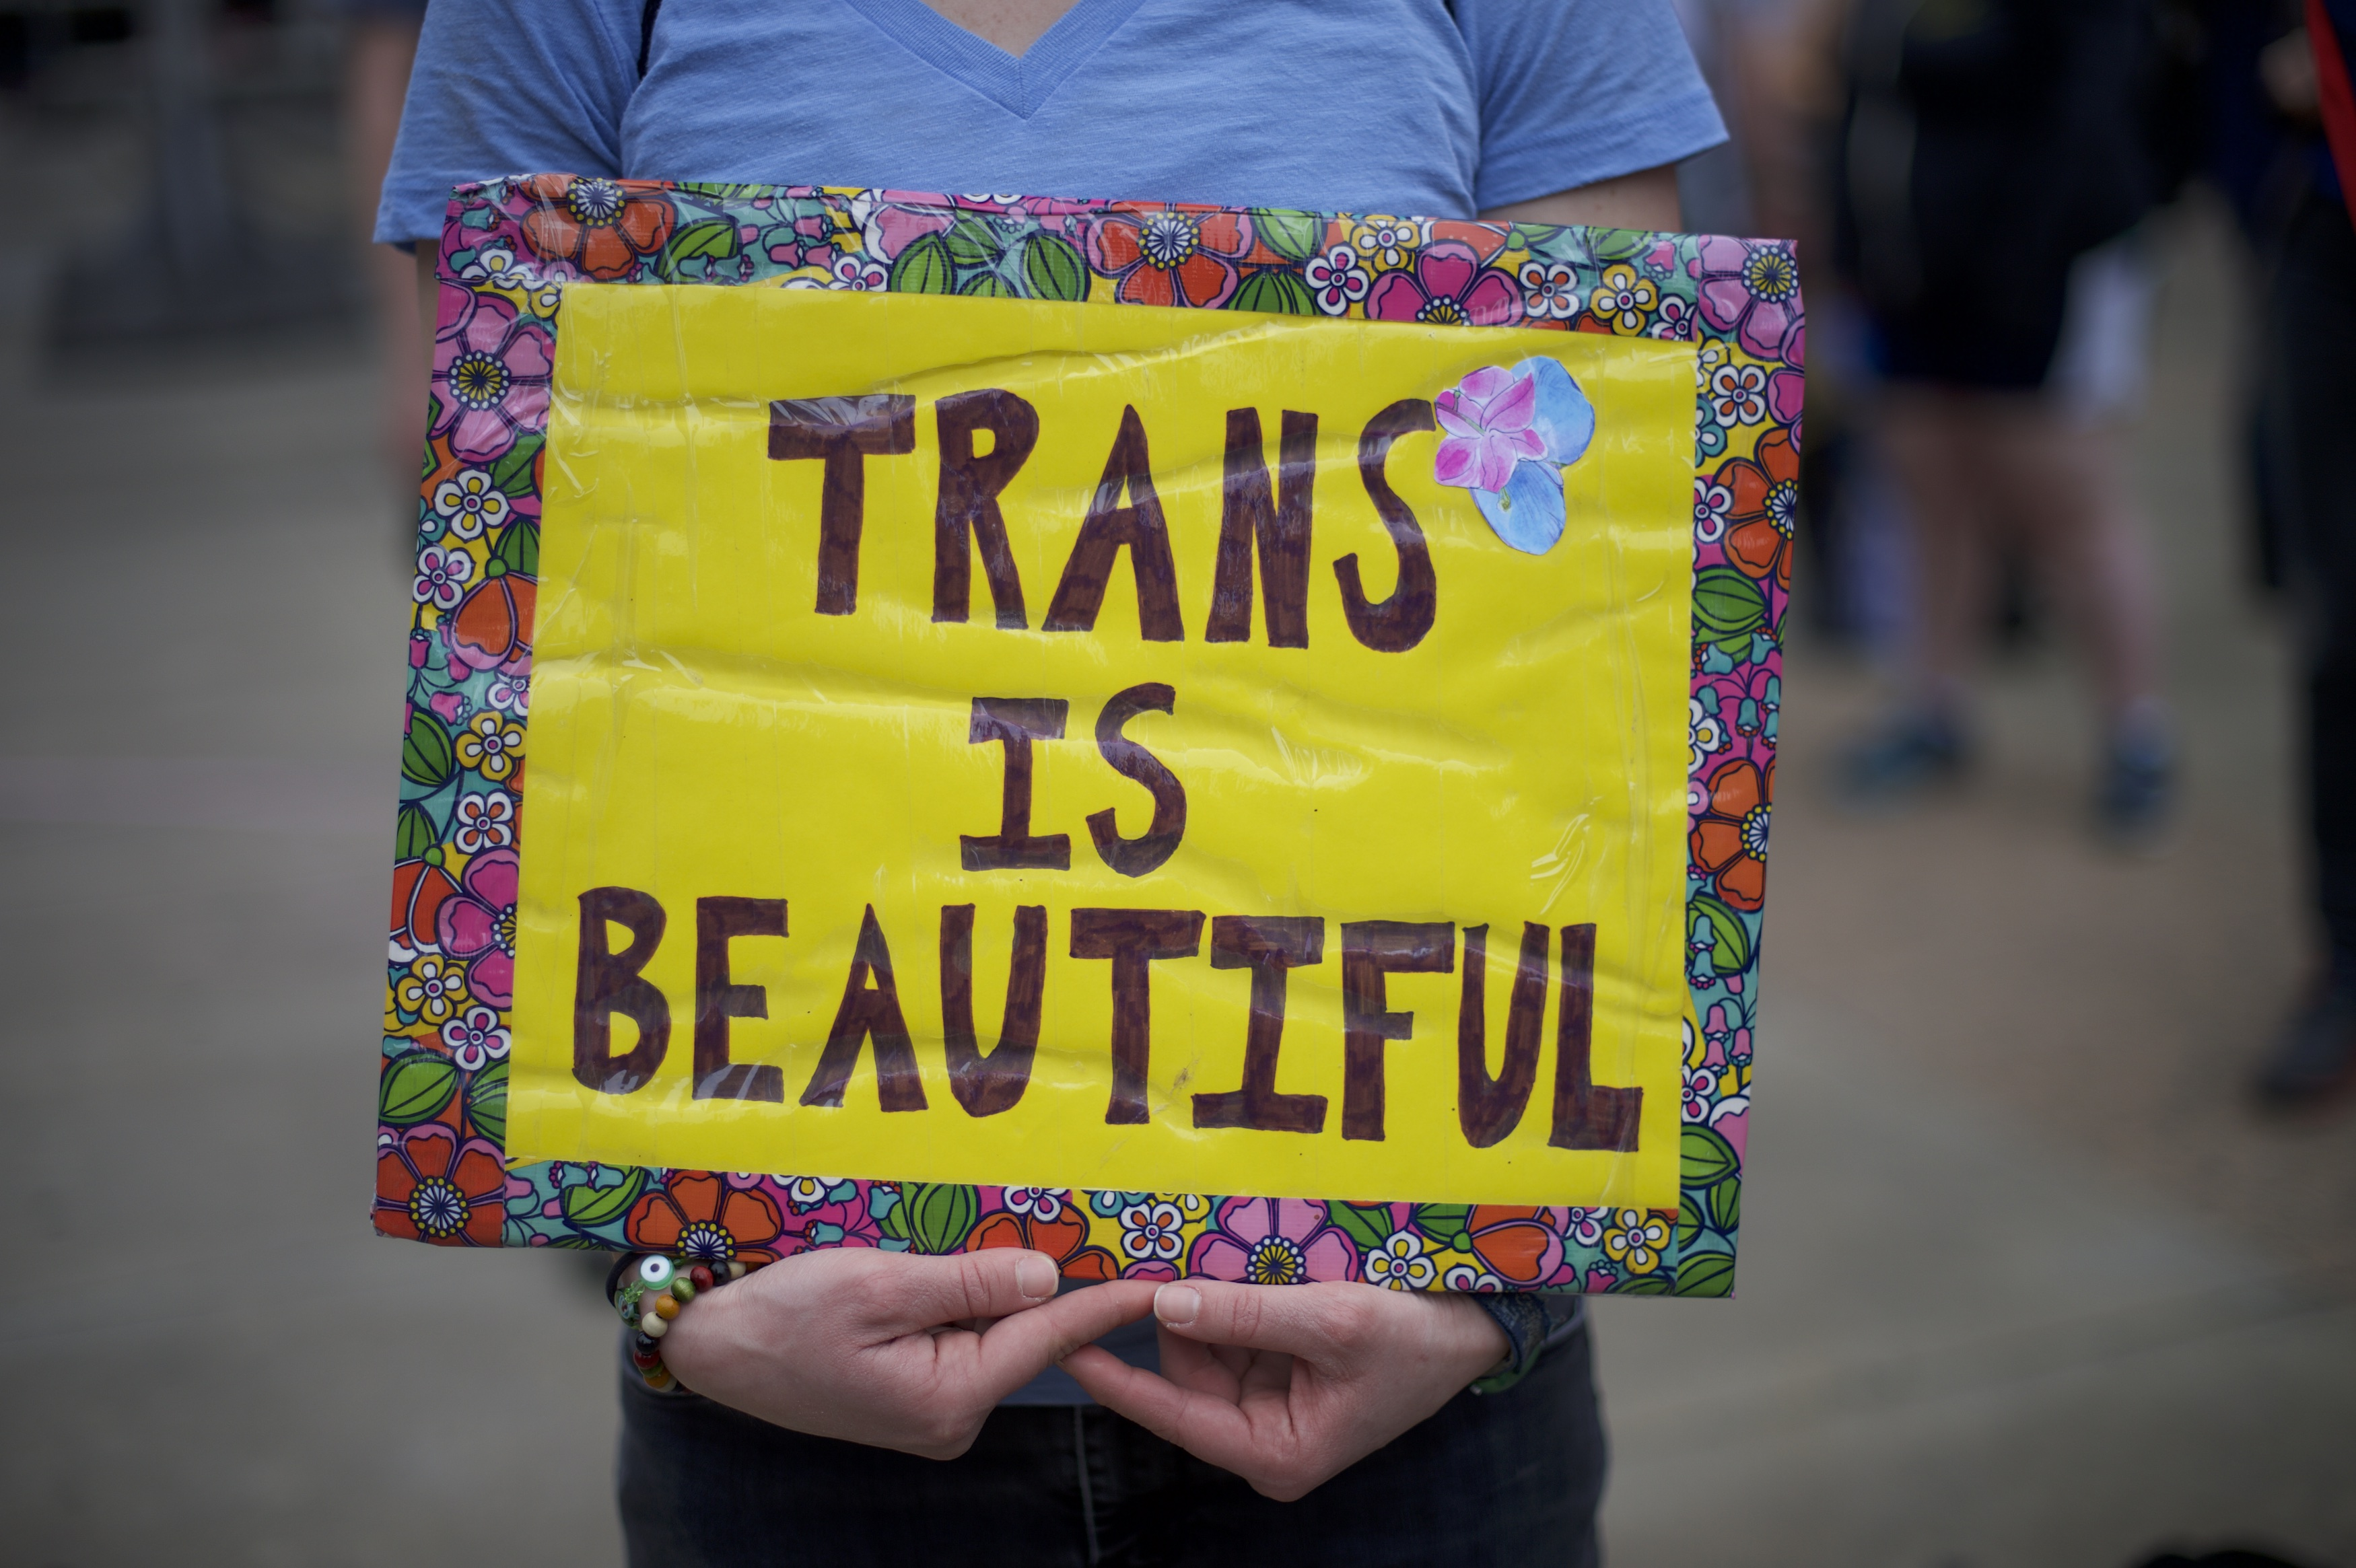 A sign at a demonstration for transgender rights.